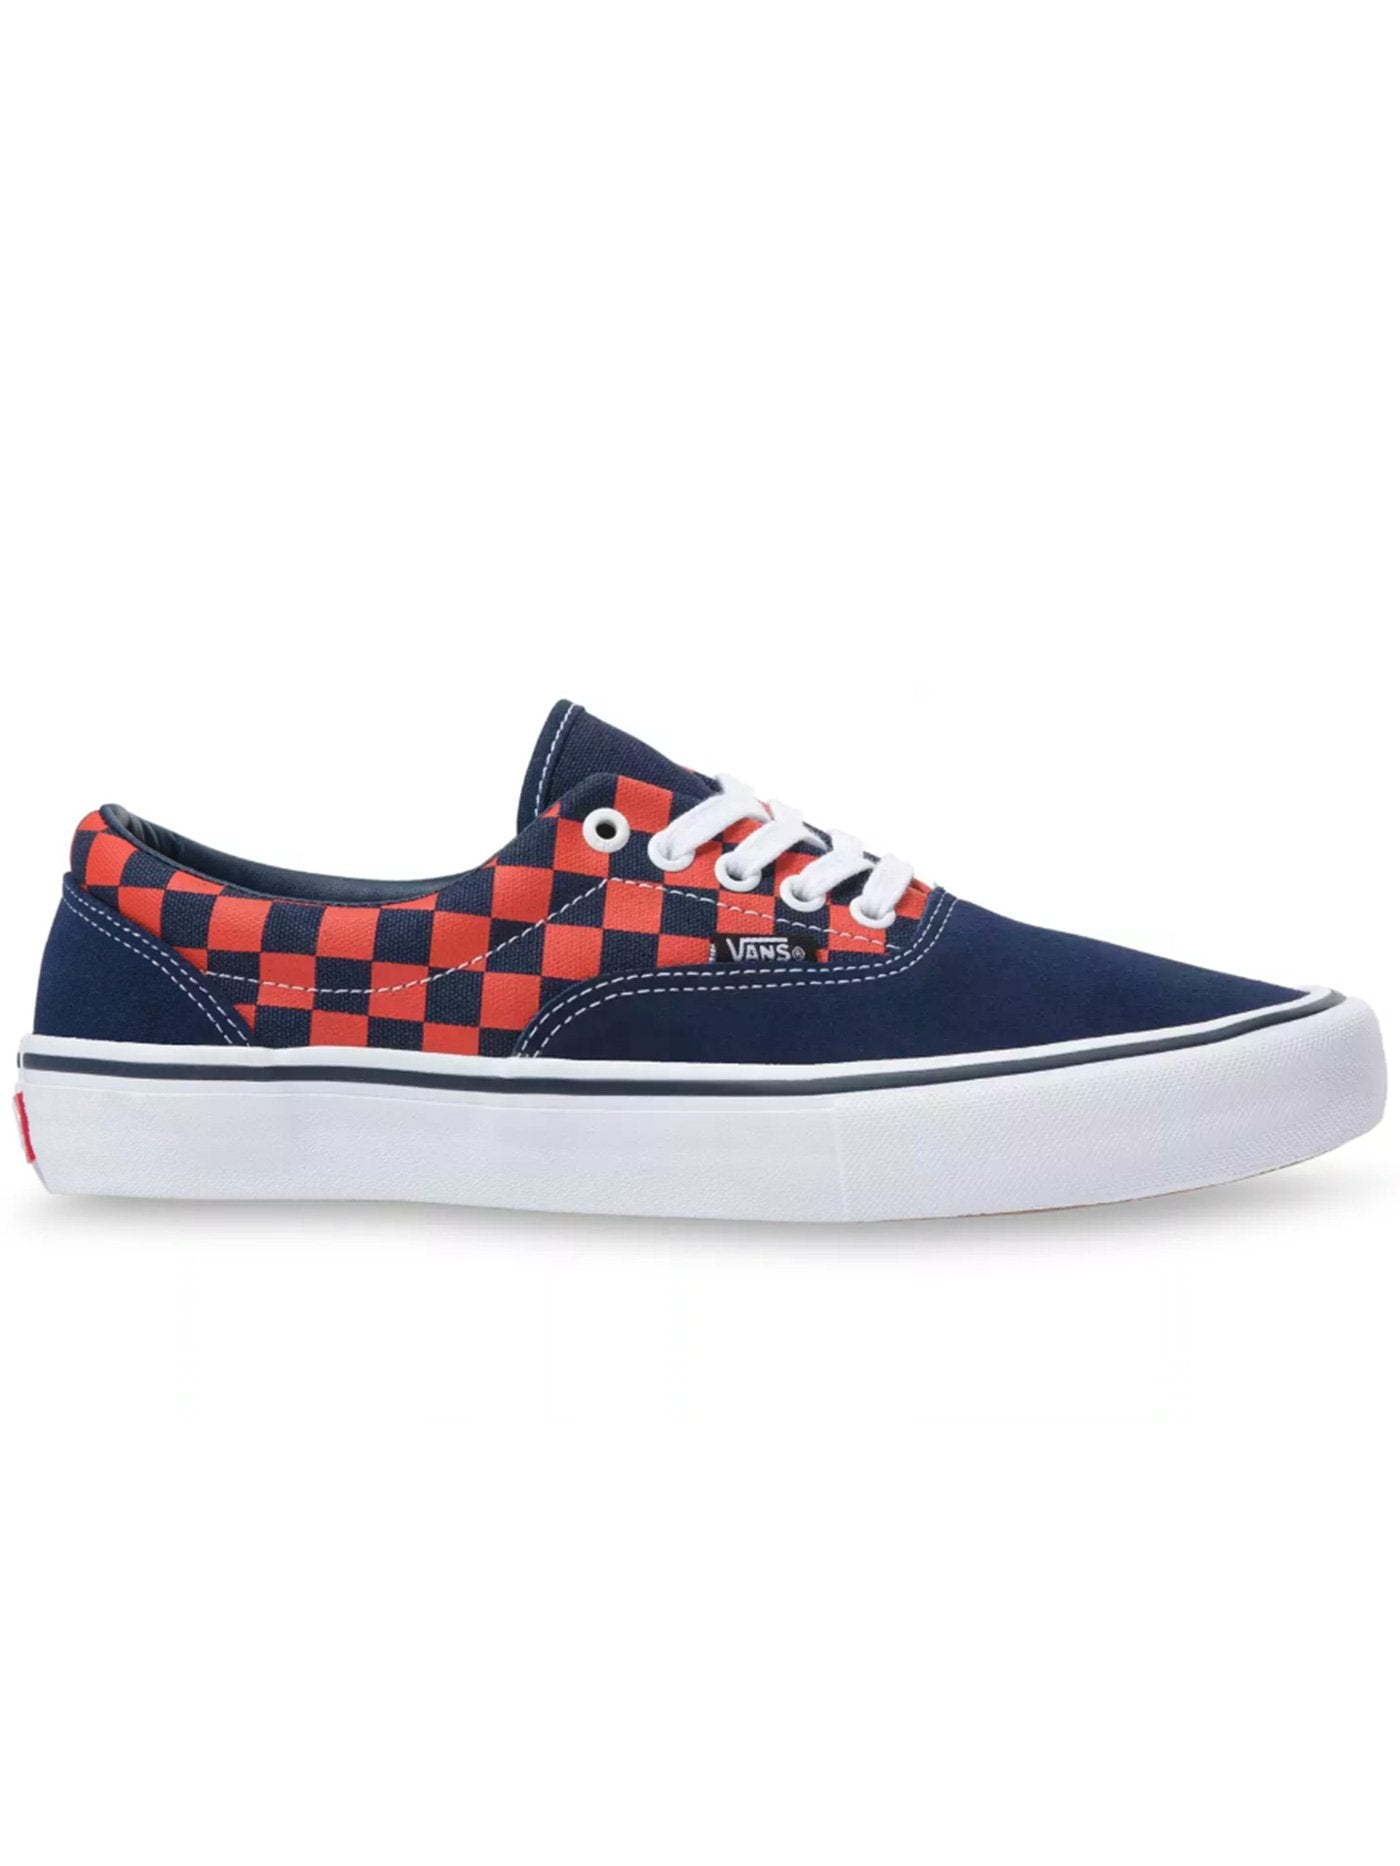 (CHECK) NAVY/ORANGE (W7E)